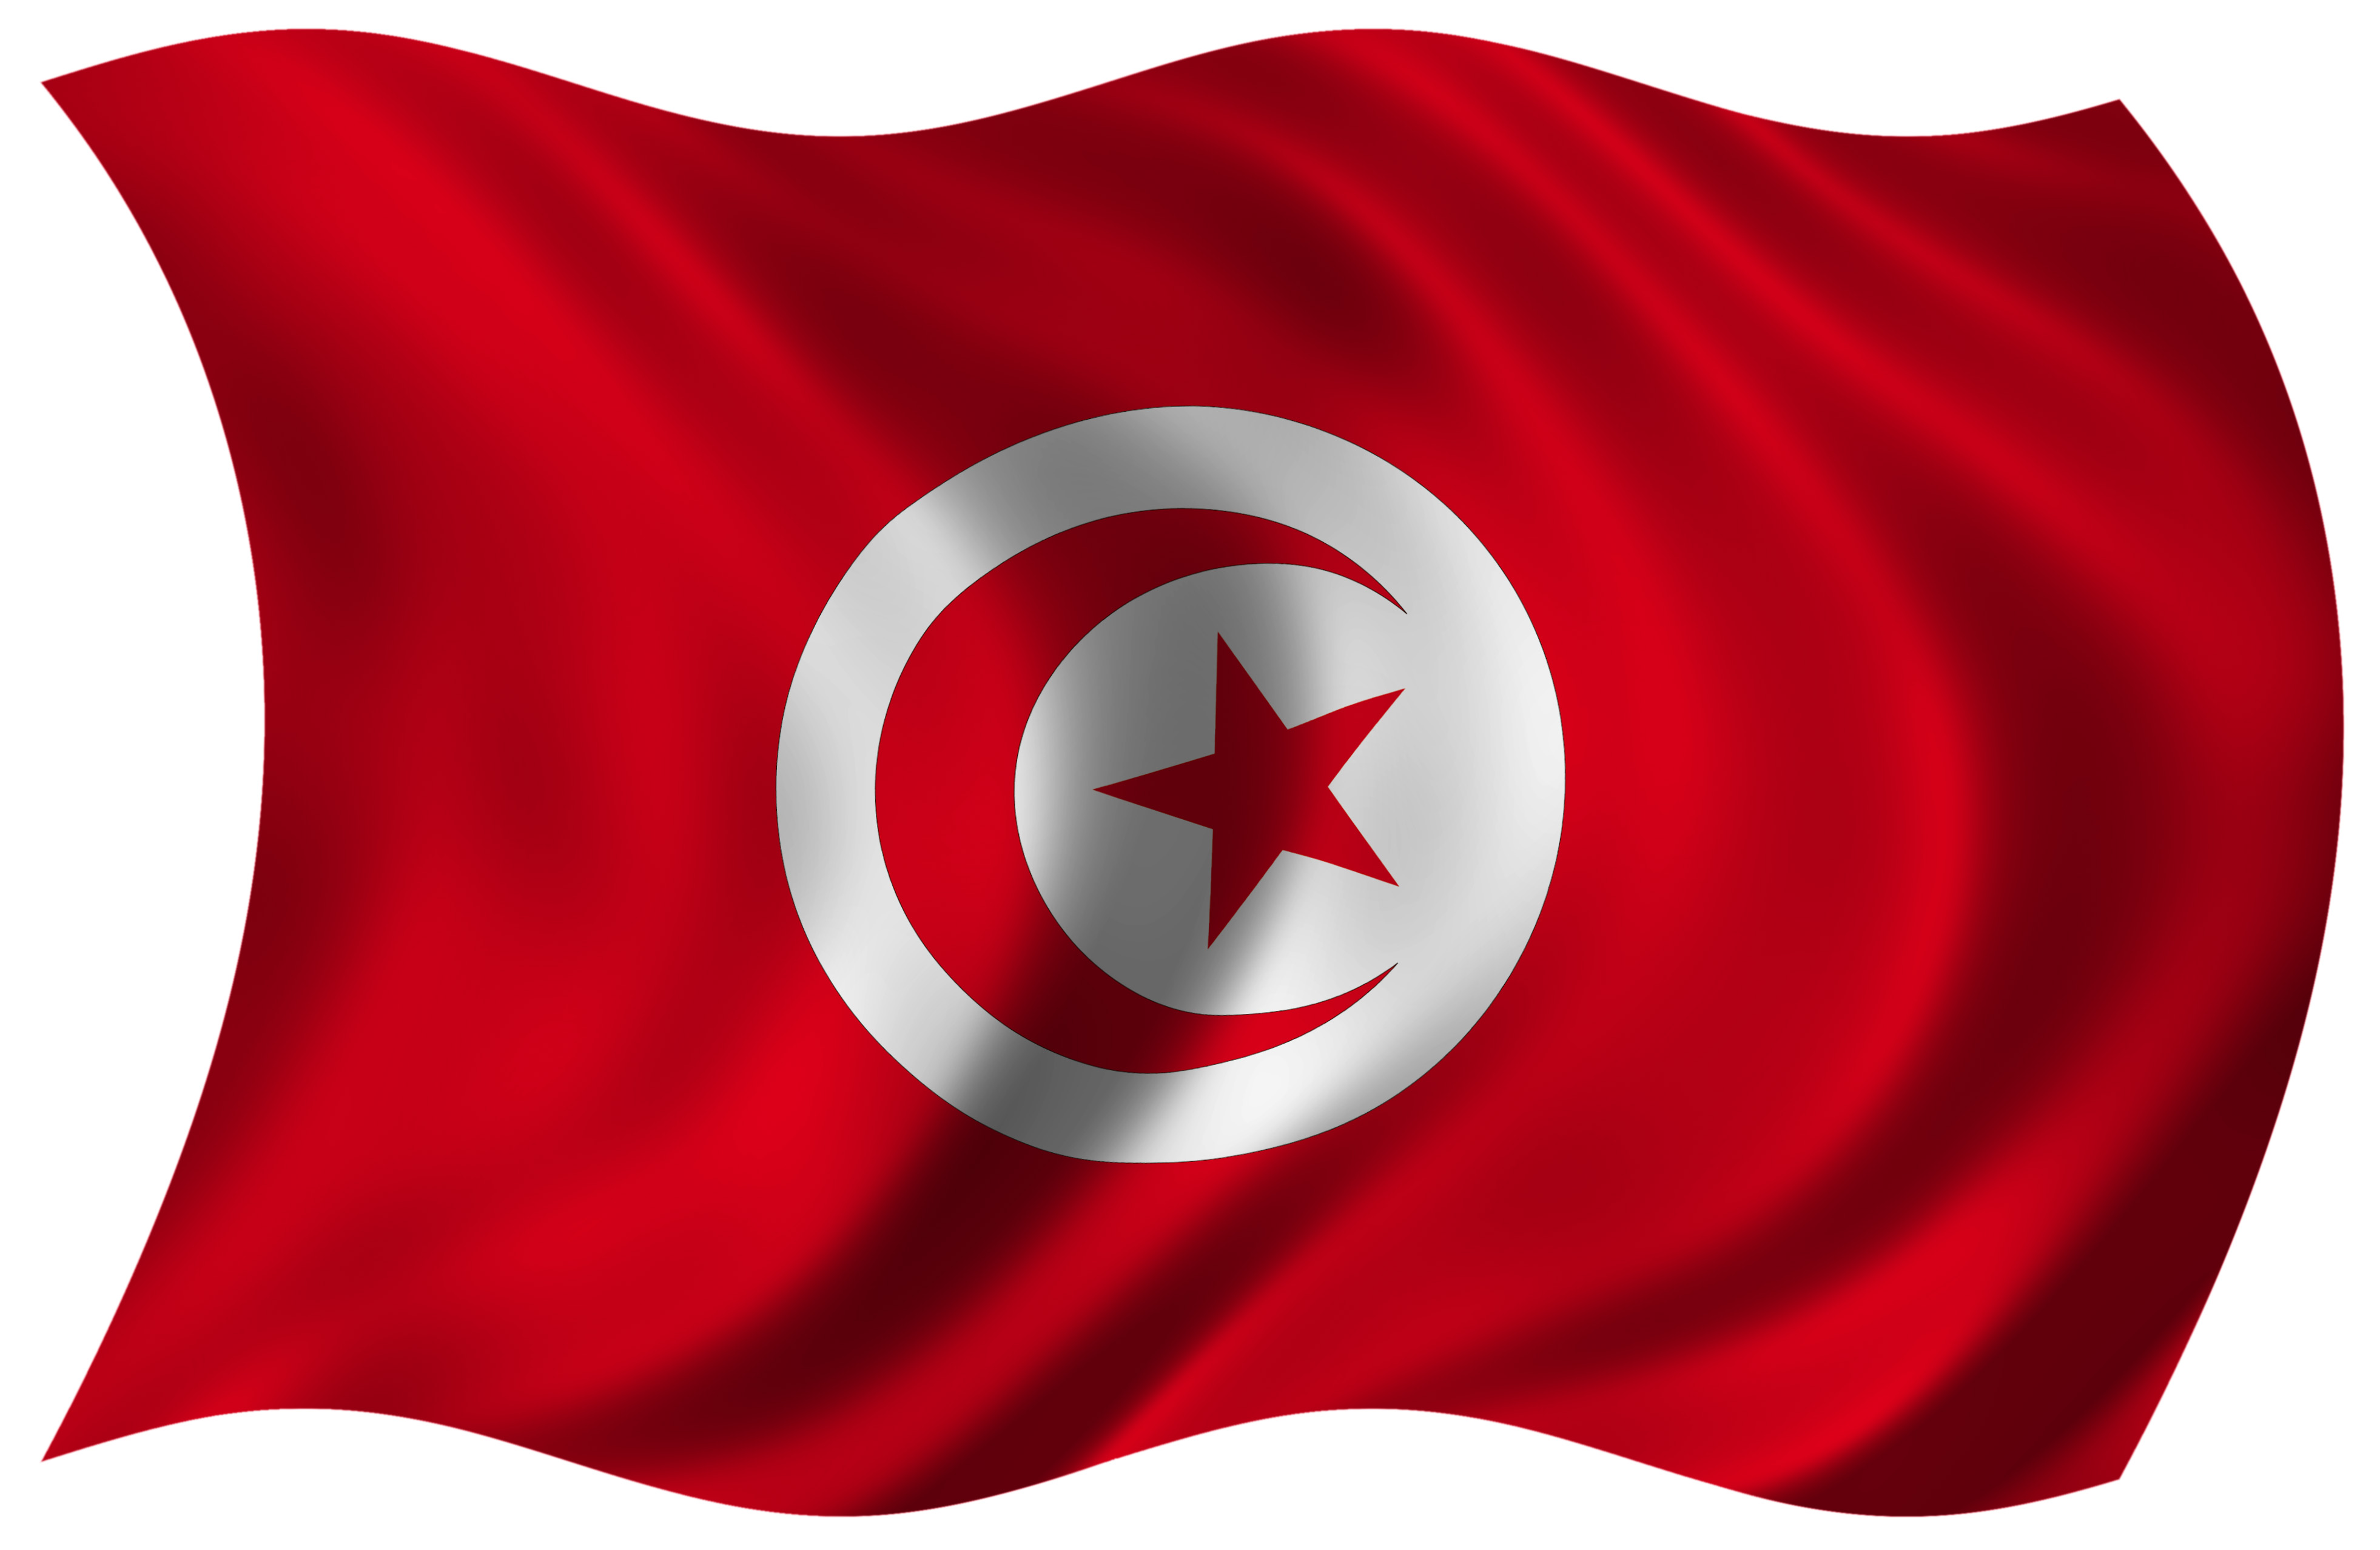 tunisia_flag_by_marafet-d33kj0i